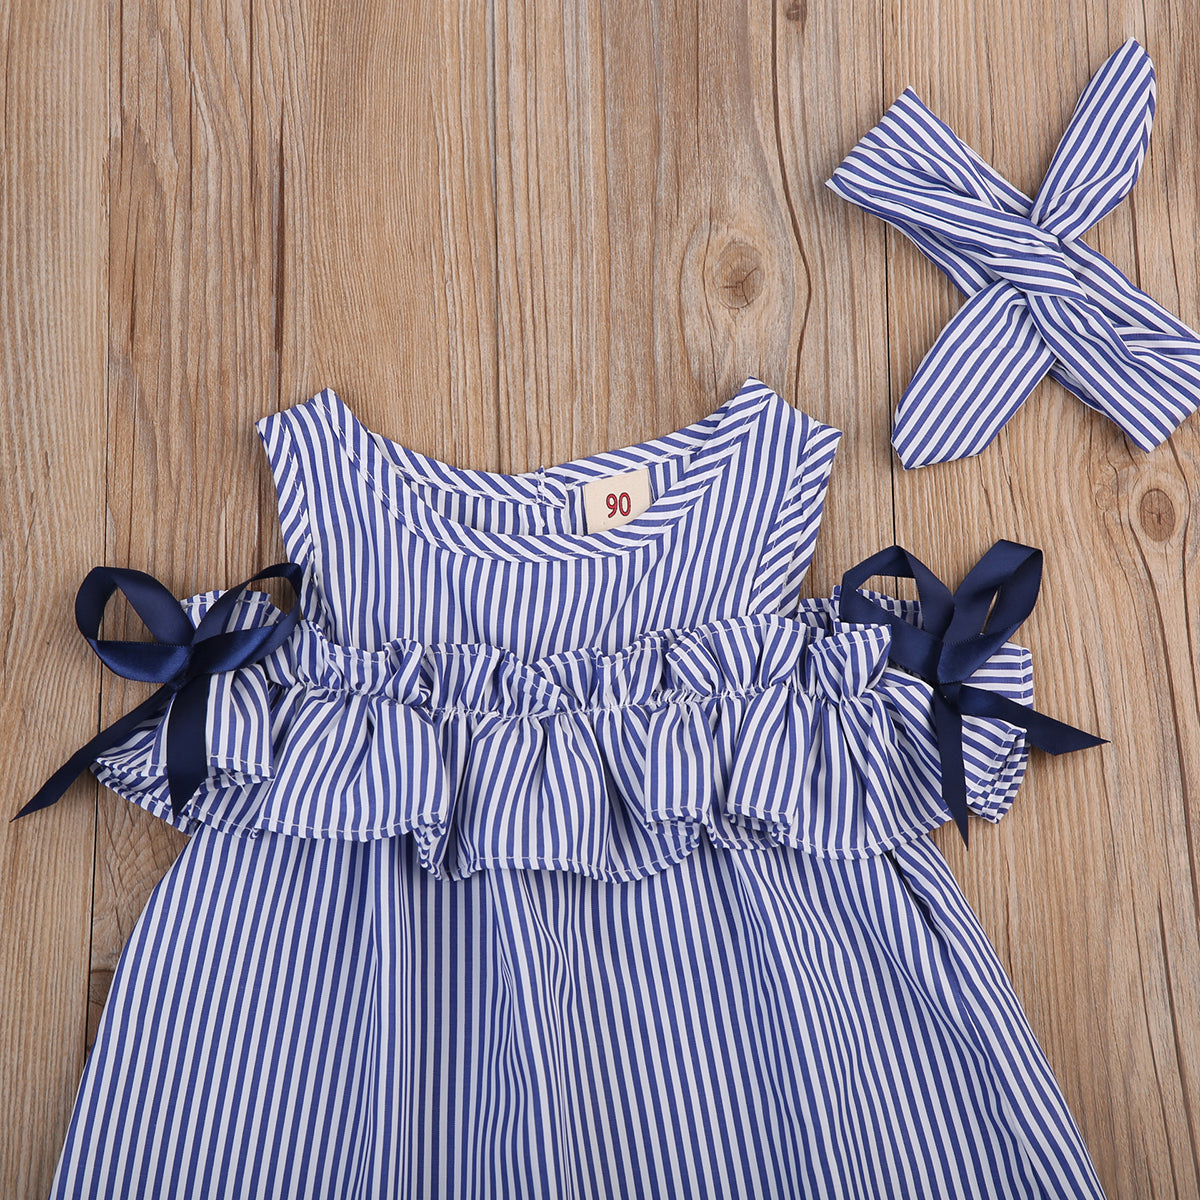 18ce6cfda Girls Blue & White Striped Sleeveless Dress with Ruffles | The Pink Bird  Boutique